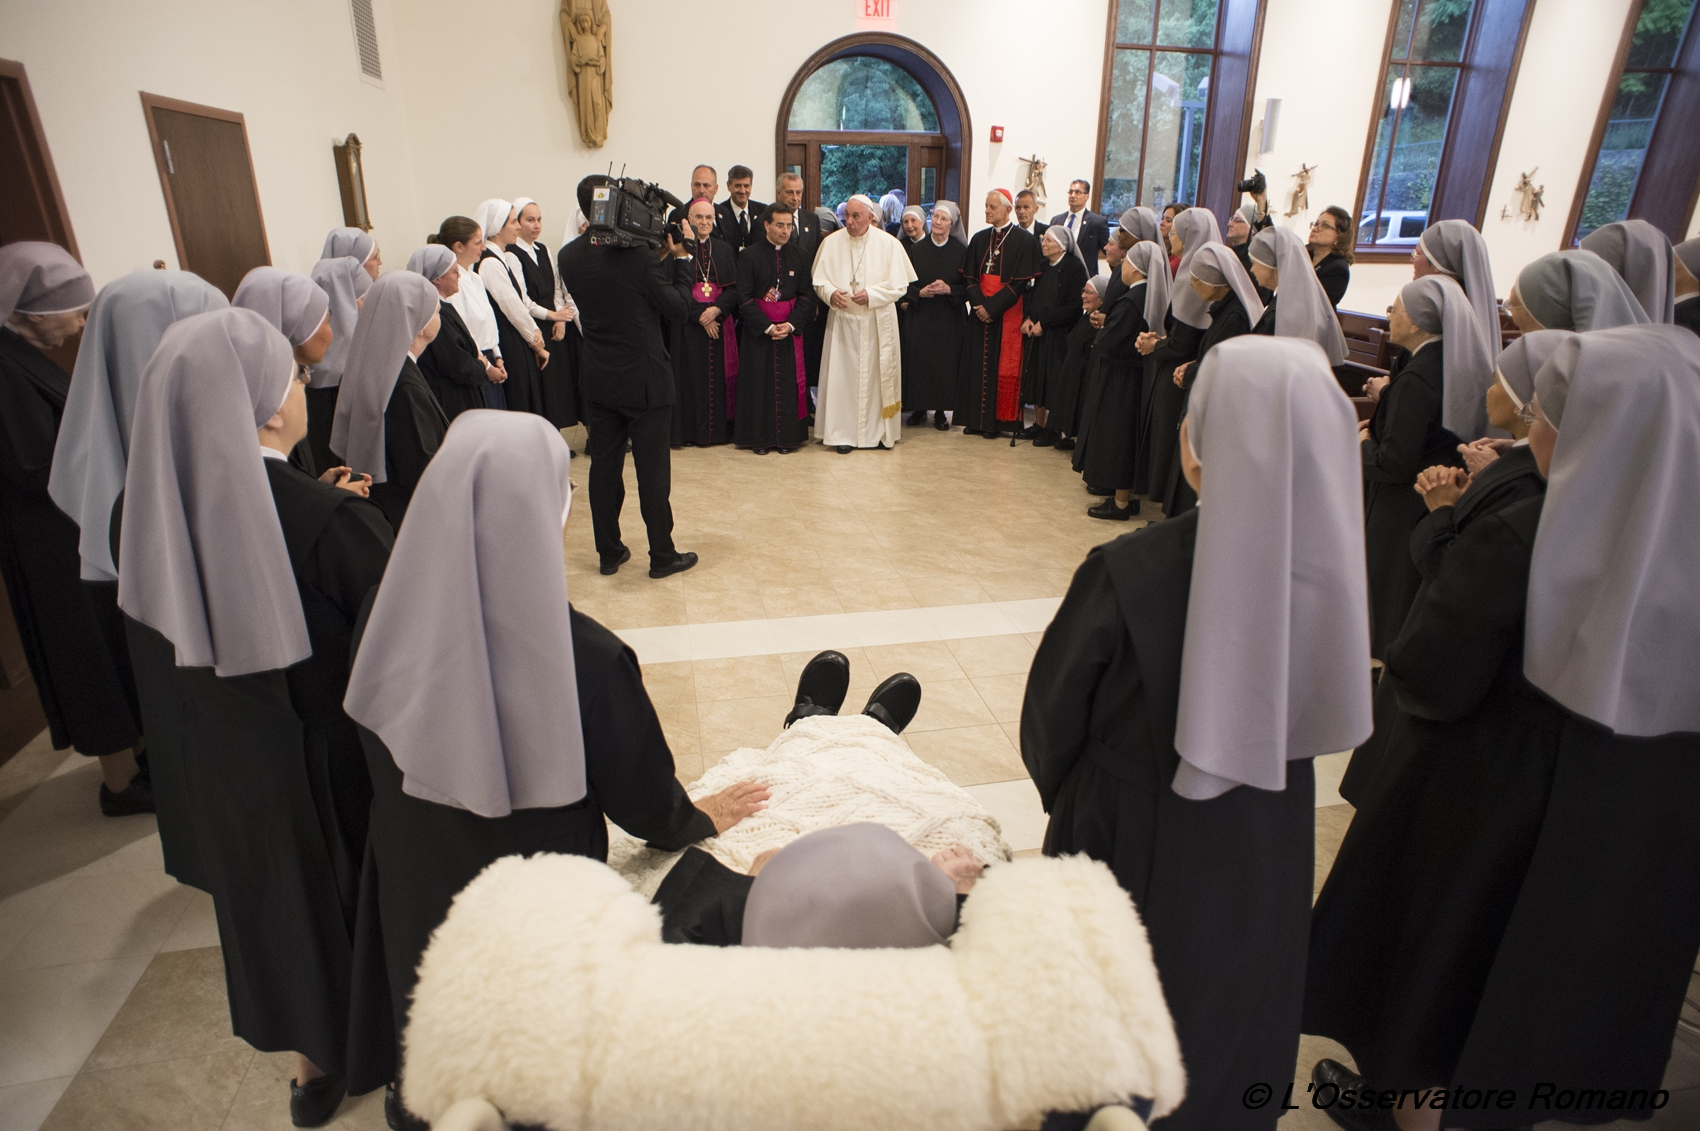 Pope Francis during his surprise visit to the Little Sisters of the Poor in Washington